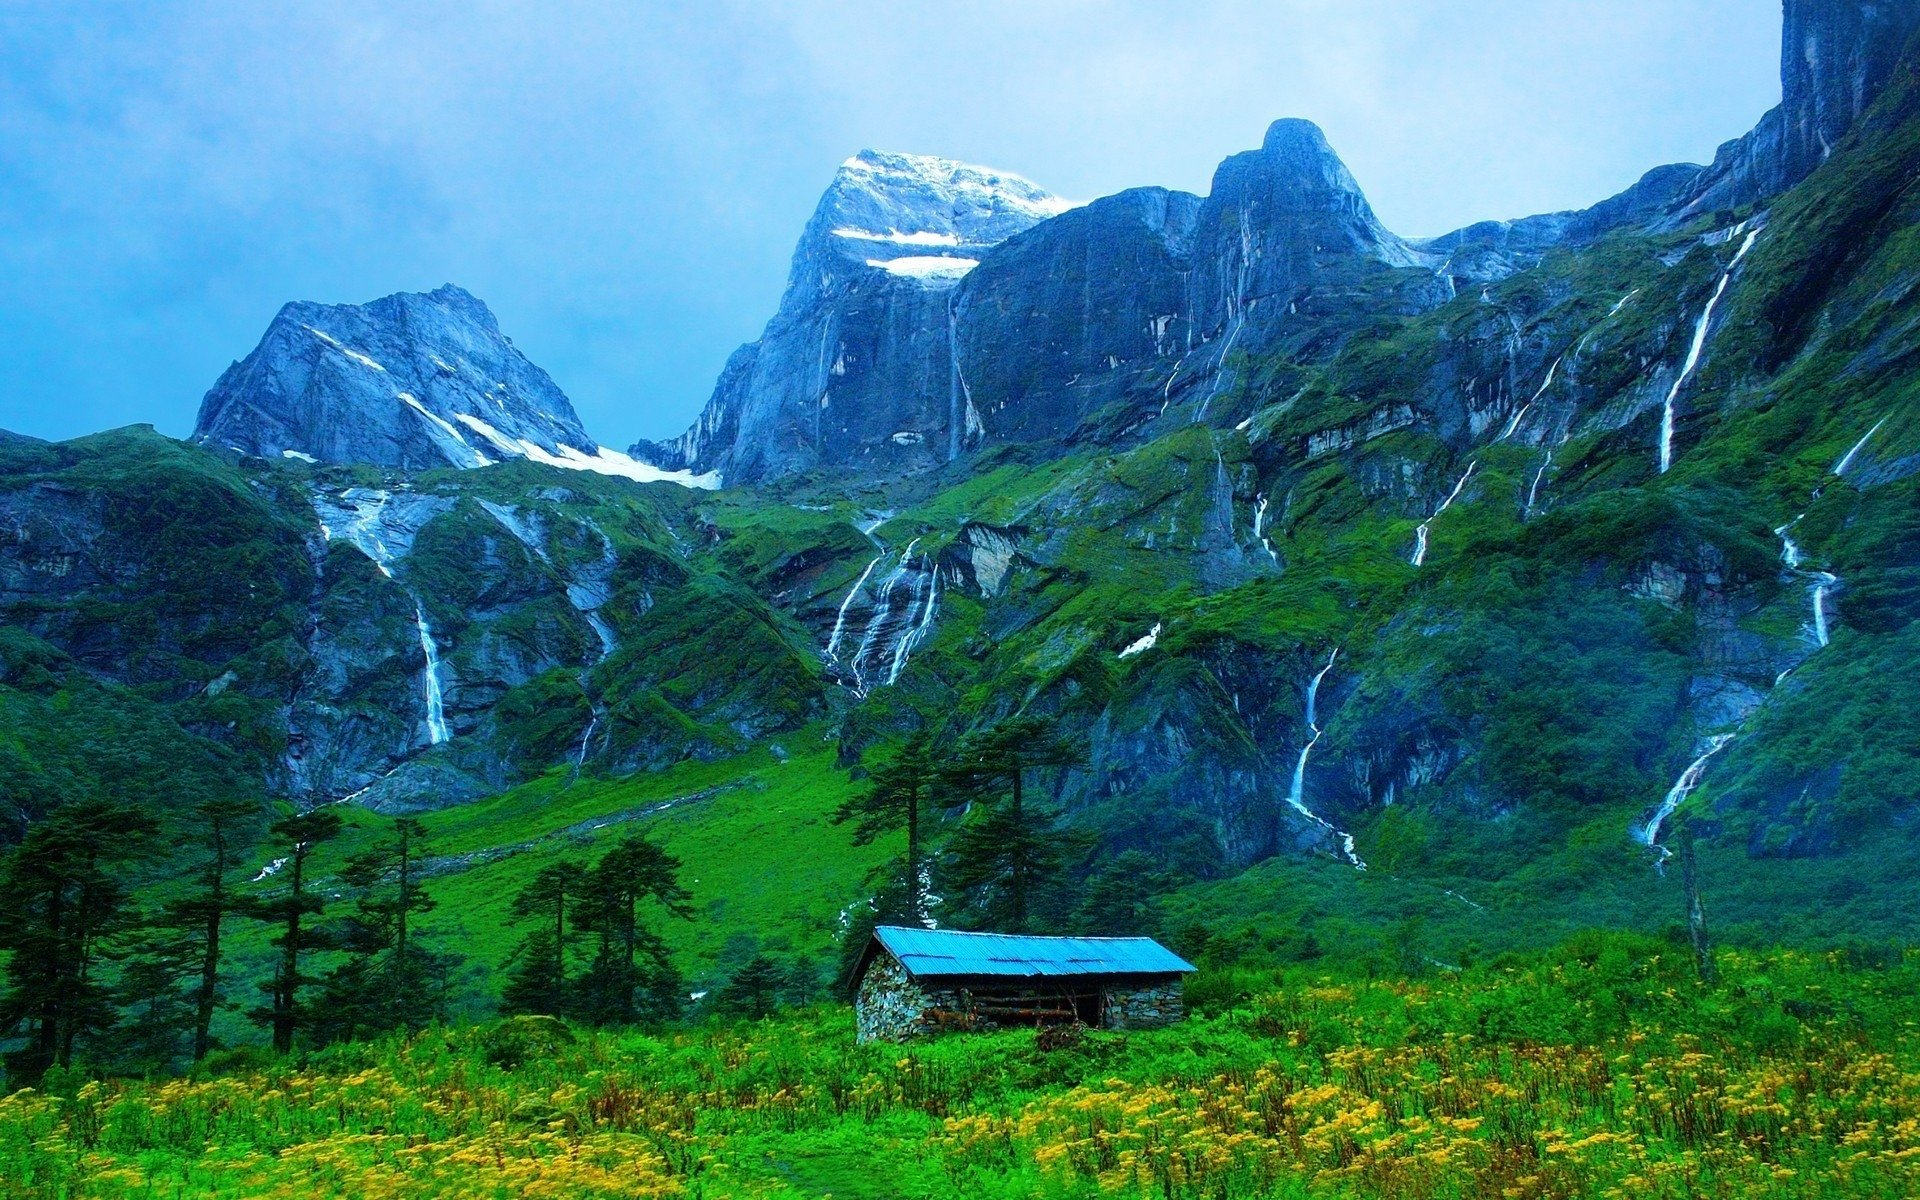 Cabin in the Mountains wallpapers and images   wallpapers pictures 1920x1200